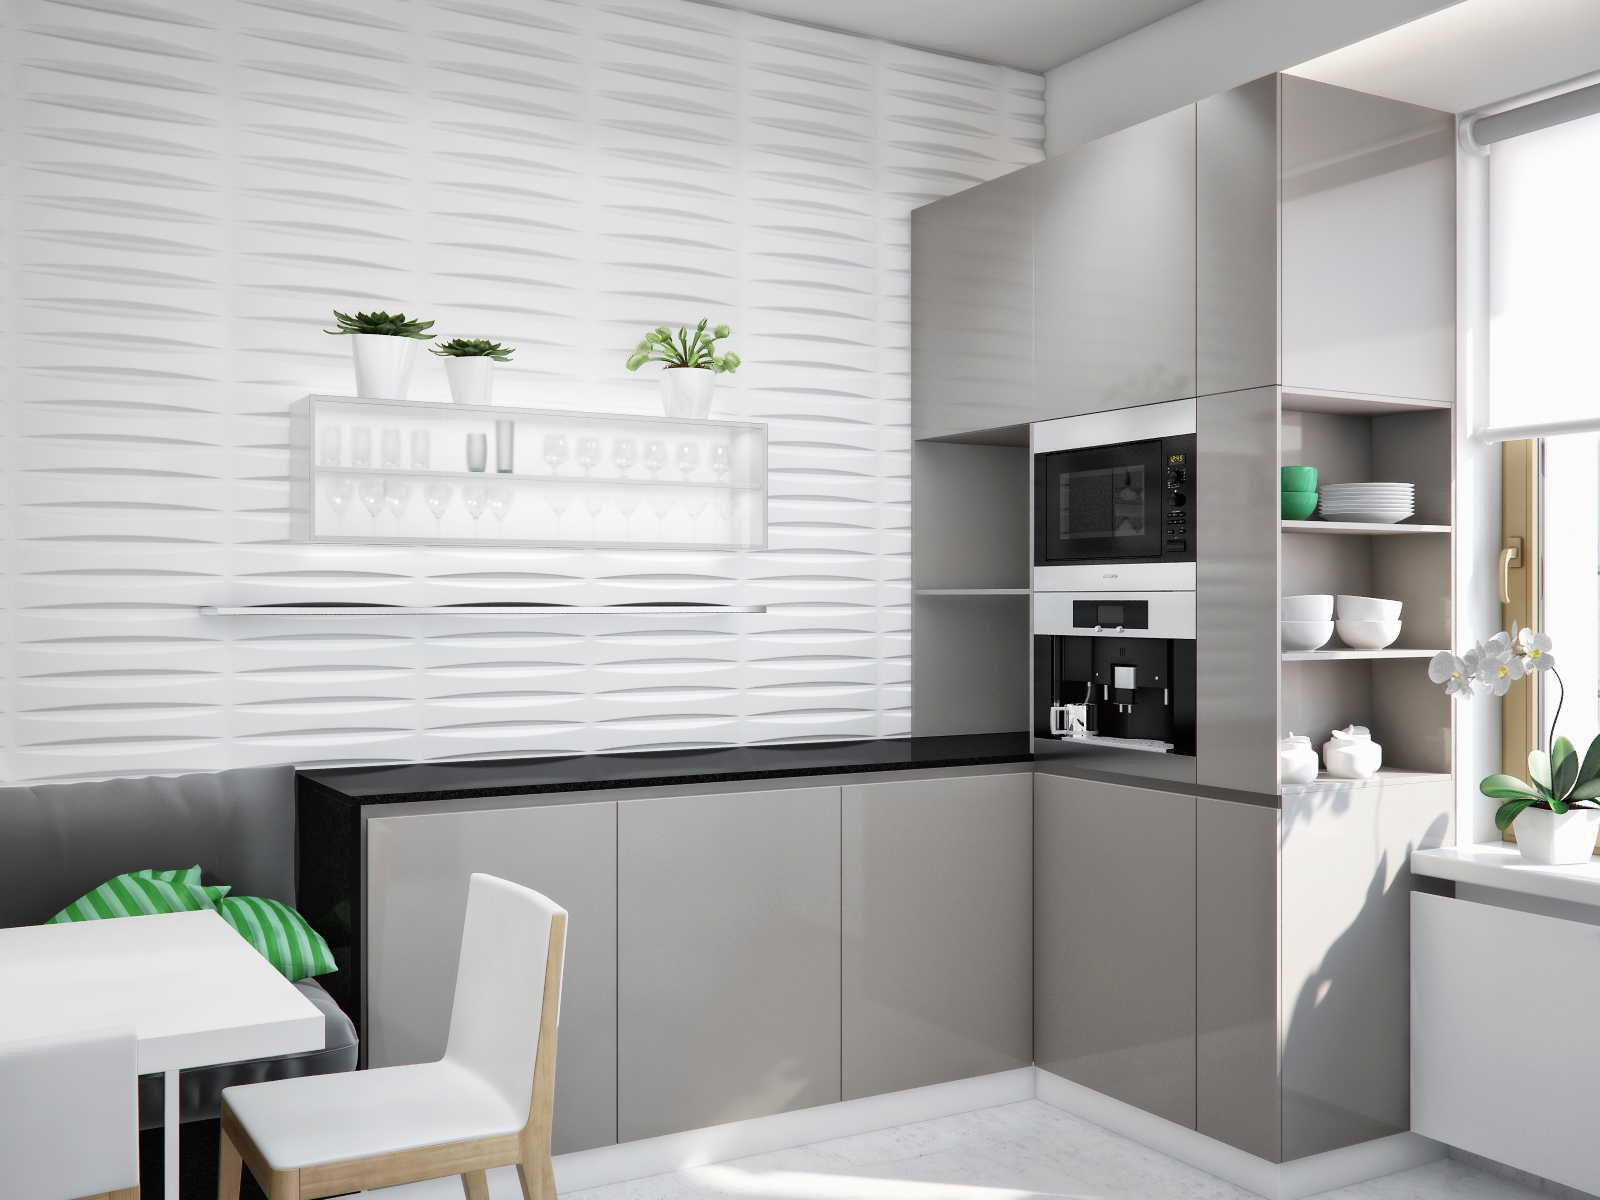 White kitchen gray units black worktop interior design for Black white and gray kitchen design